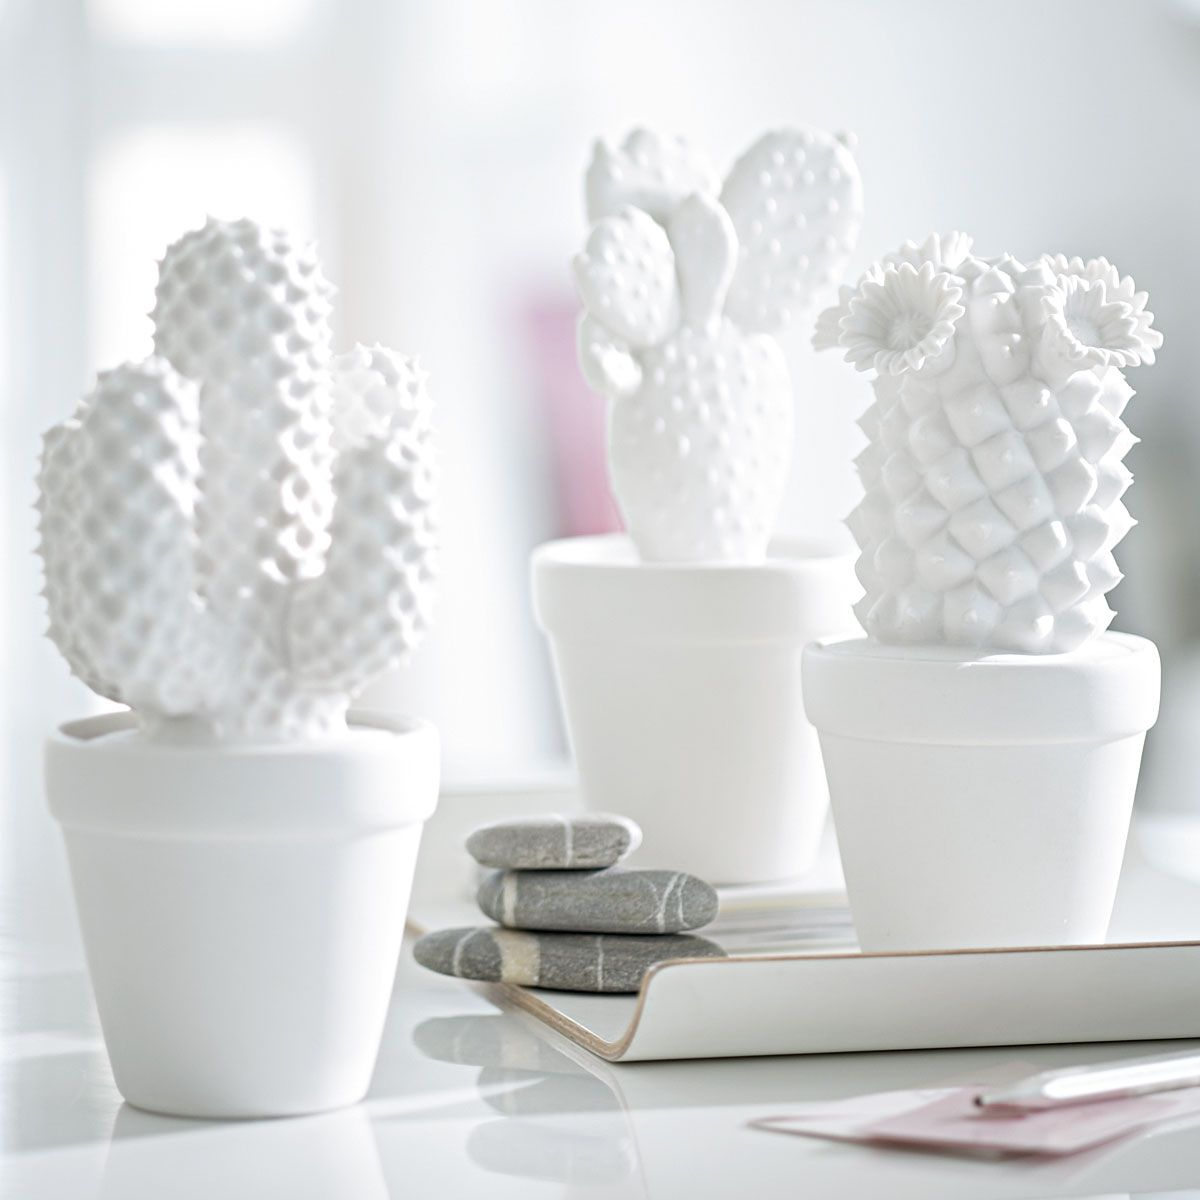 Cactus Porselein Porcelain Cacti Plantas And Flores Pinterest